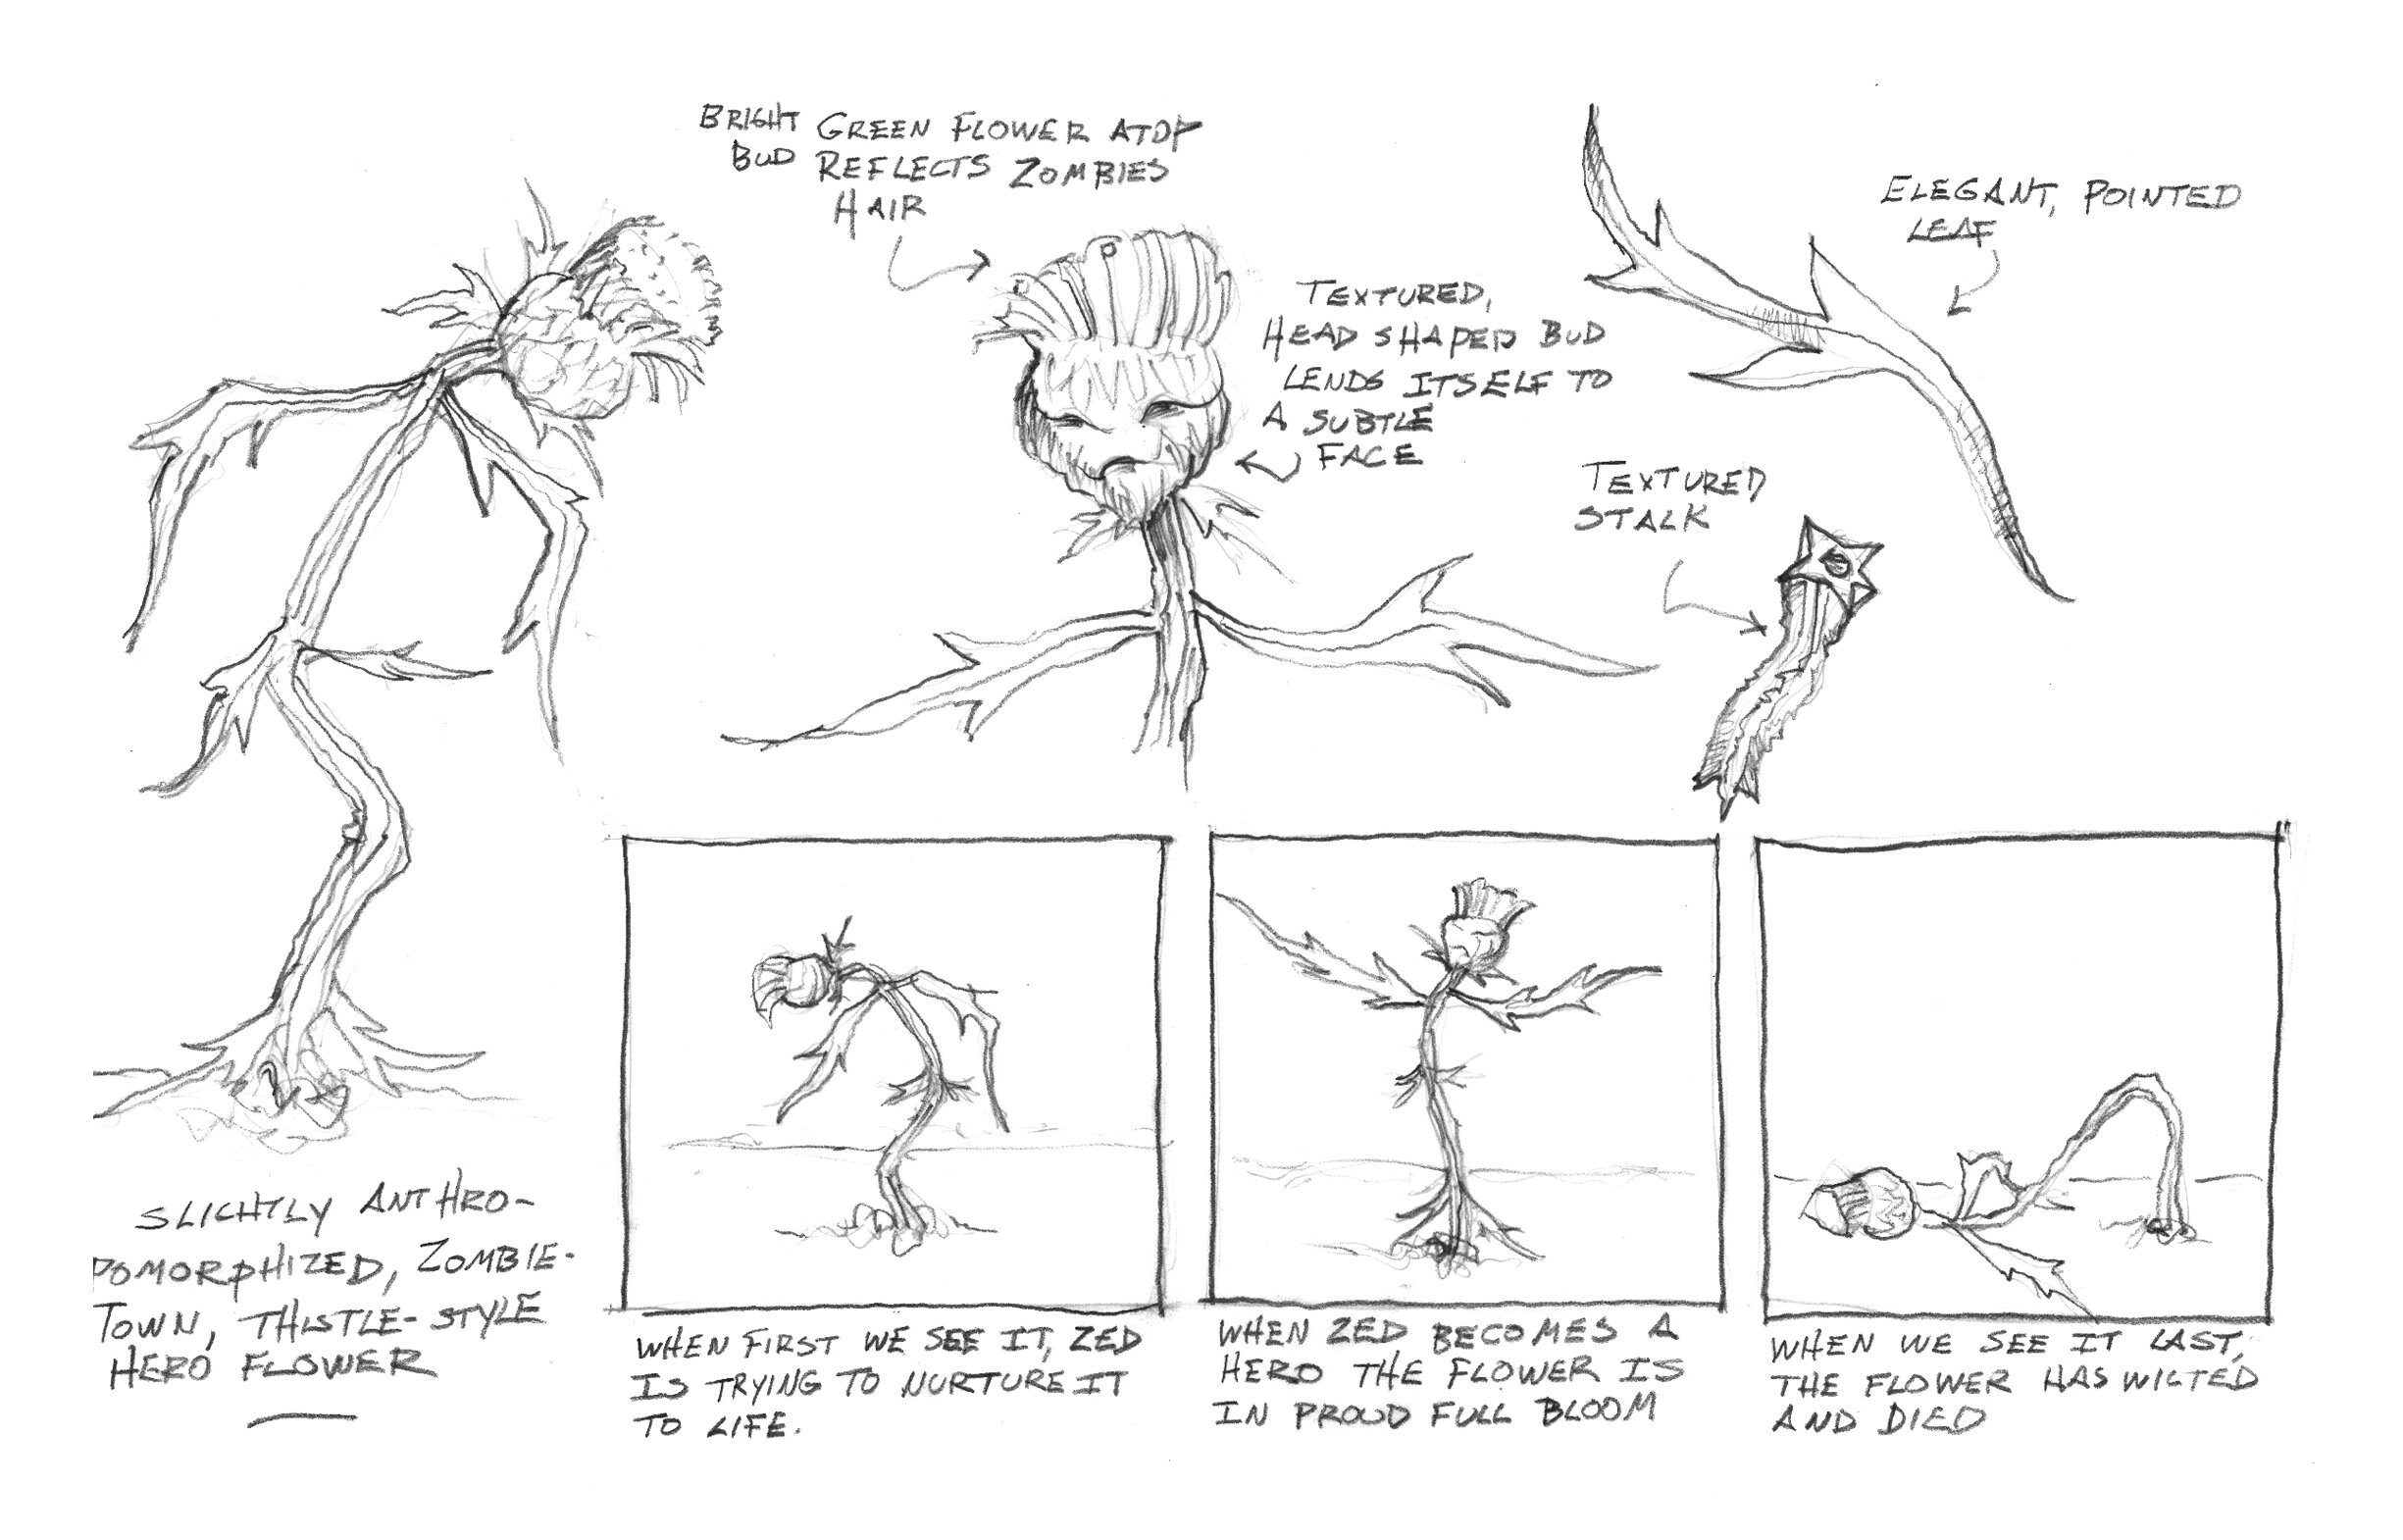 In Disney's Z-O-M-B-I-E-S, zombies living in segregated Zombietown live a subsistence life. There are no public services including electricity or water. But one little zombie flower struggles to make it, just like the zombie underclass. This is my design sketch/storyboard for the story-beats of our silent little hero.